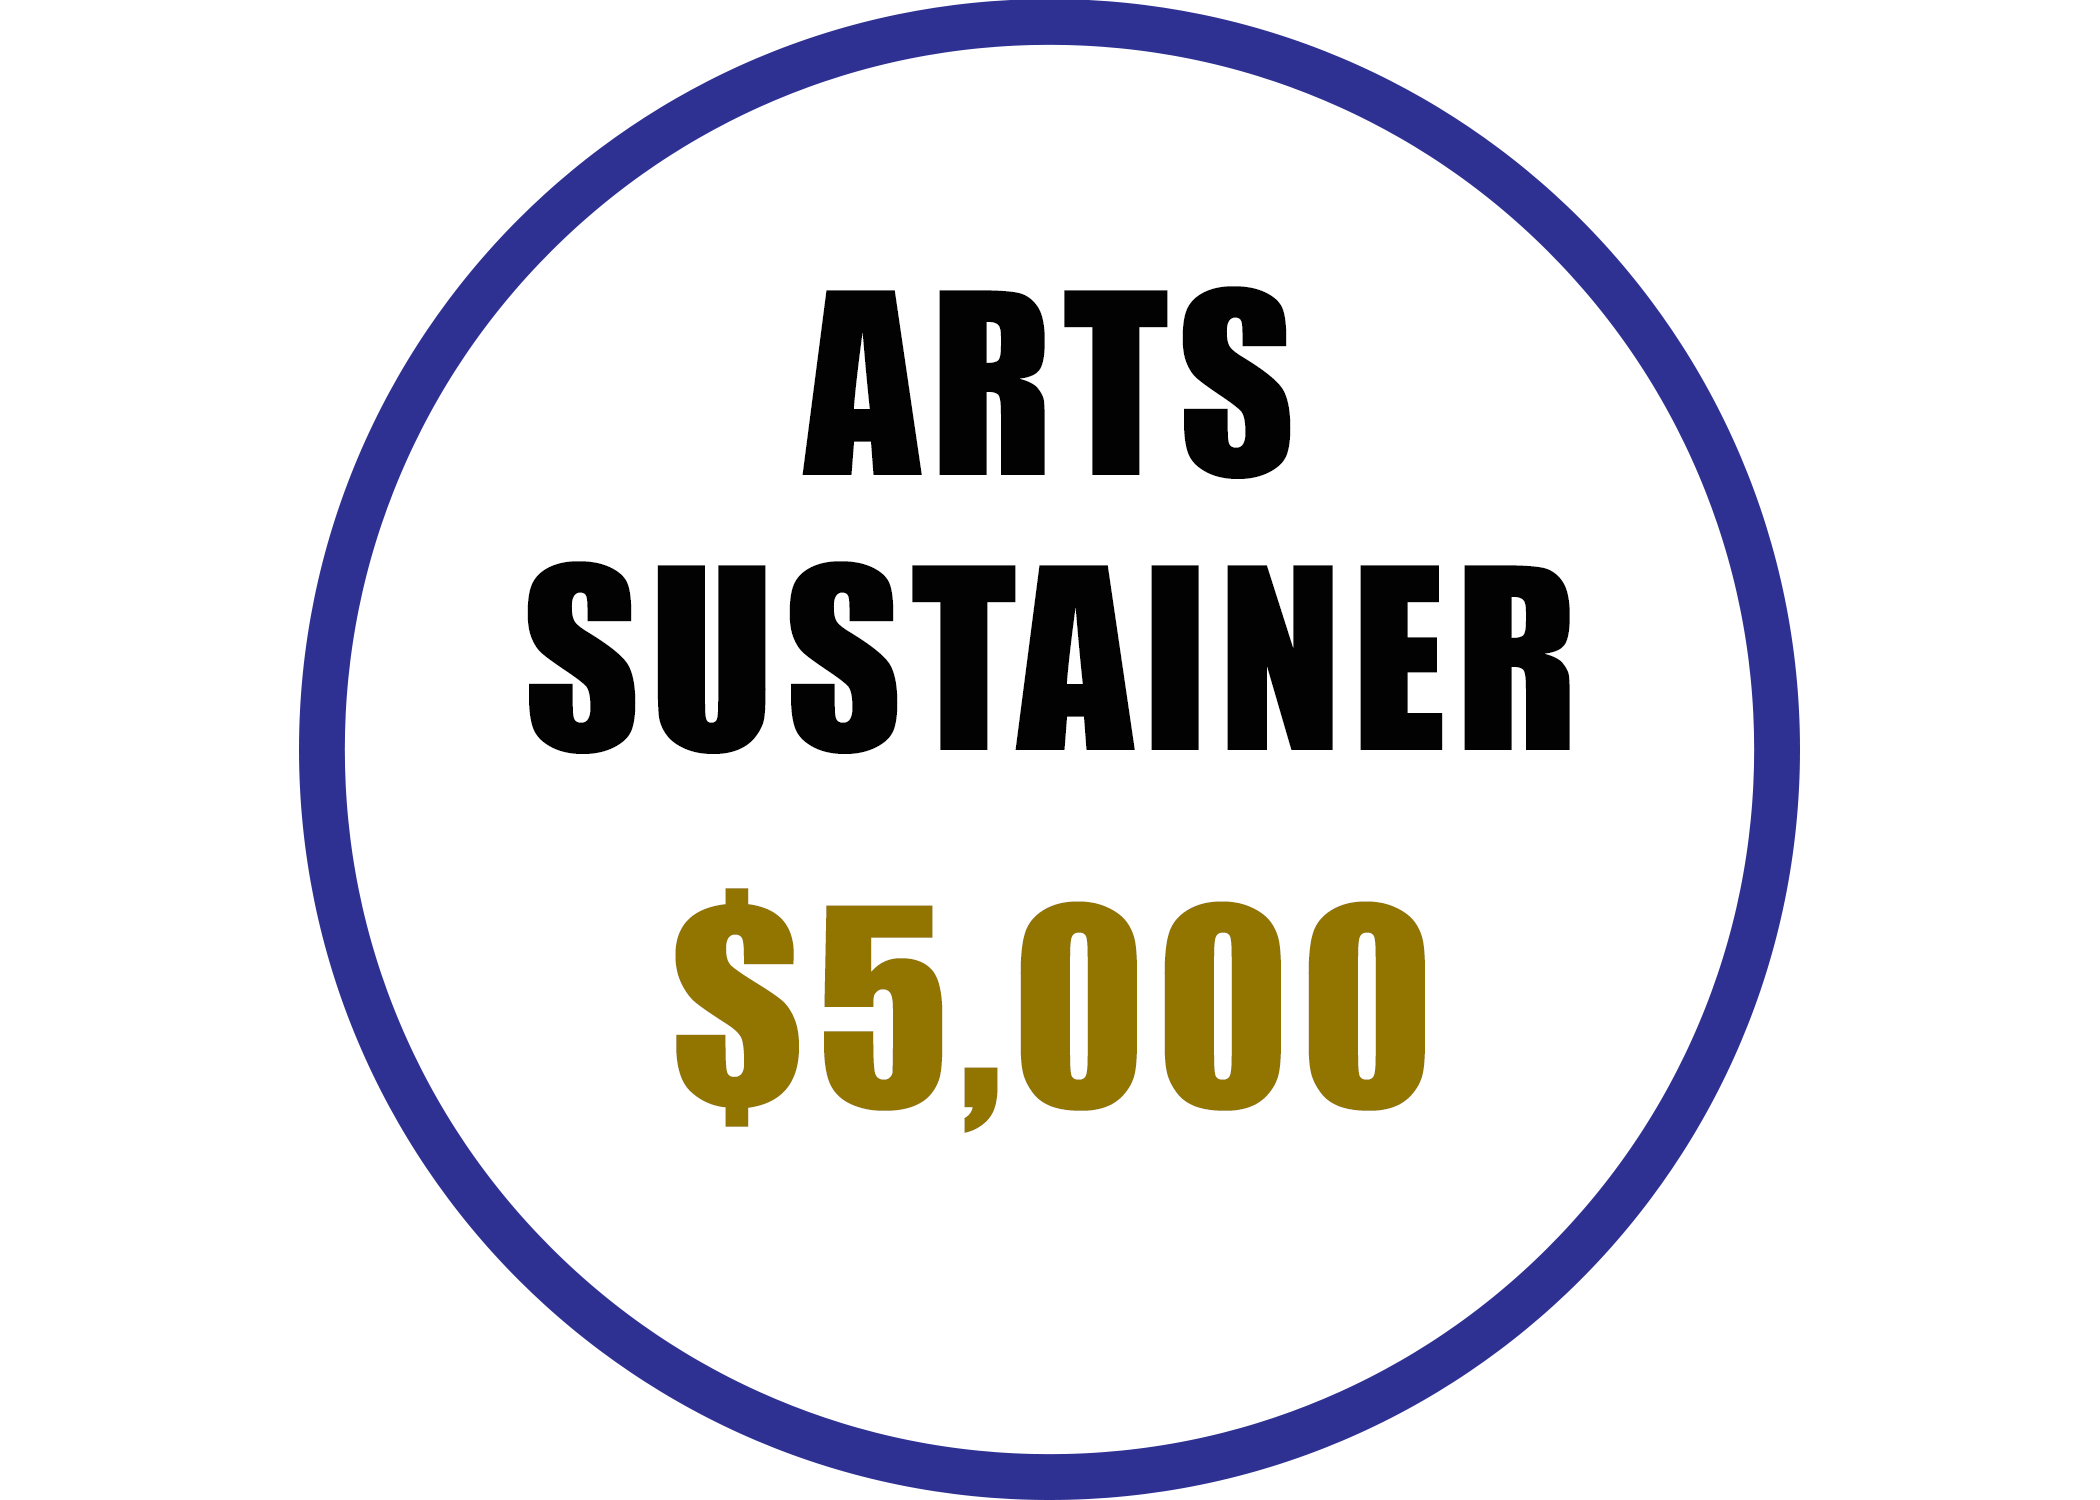 Arts Sustainer benefits include:  -Recognition on the Arts Council website  -Voting rights at the Annual Meeting -20% discount on Artsplosion! Camps for kids -4 VIP passes at Ebb & Flow Festival -40% discounted rental at Arts Council venues -Advance ticket purchase opportunity for River City Jazz Master Series -VIP access to River City Jazz Masters concerts -Priority invitation to Art Routes trips -Customized VIP benefits